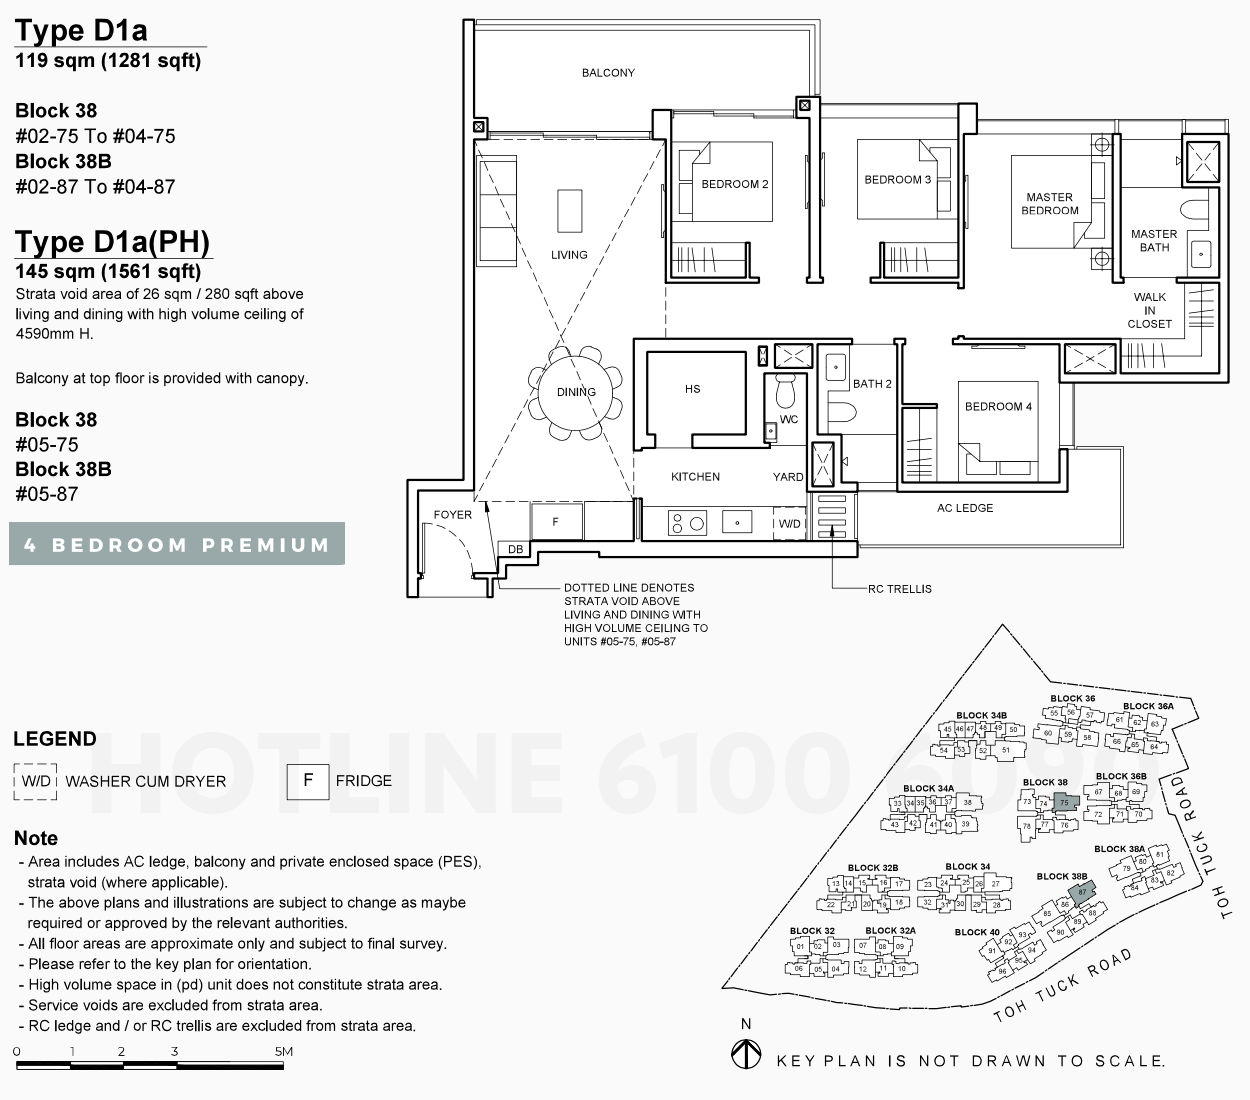 Floor Plan . 4 Bedroom Premium Type D1a